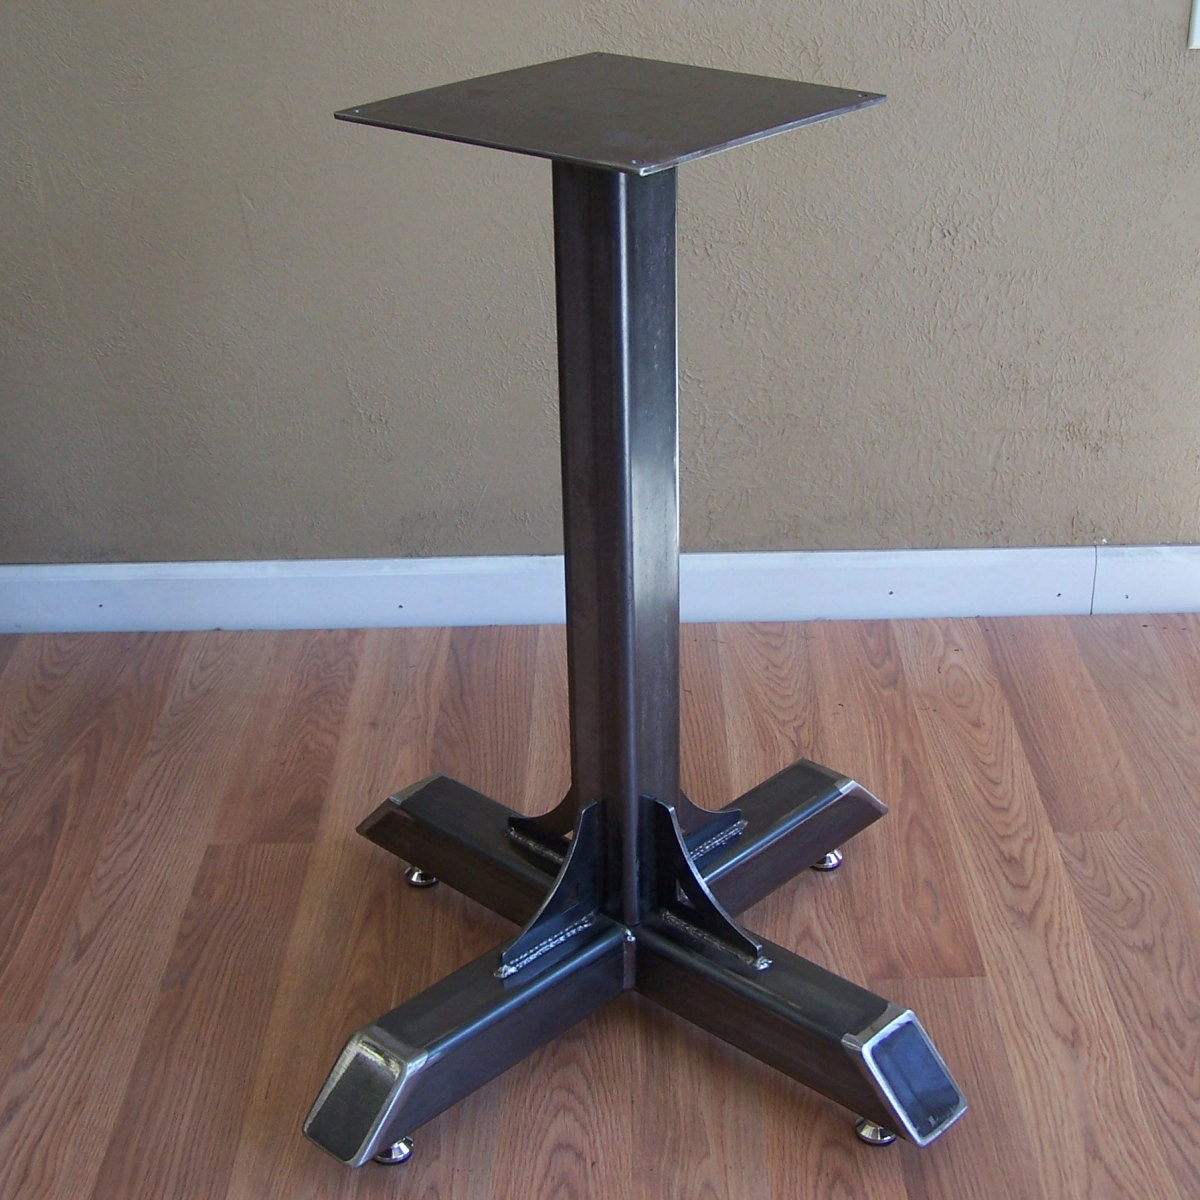 Bistro Cafe Table Base Heavy Duty Industrial Steel Pedestal